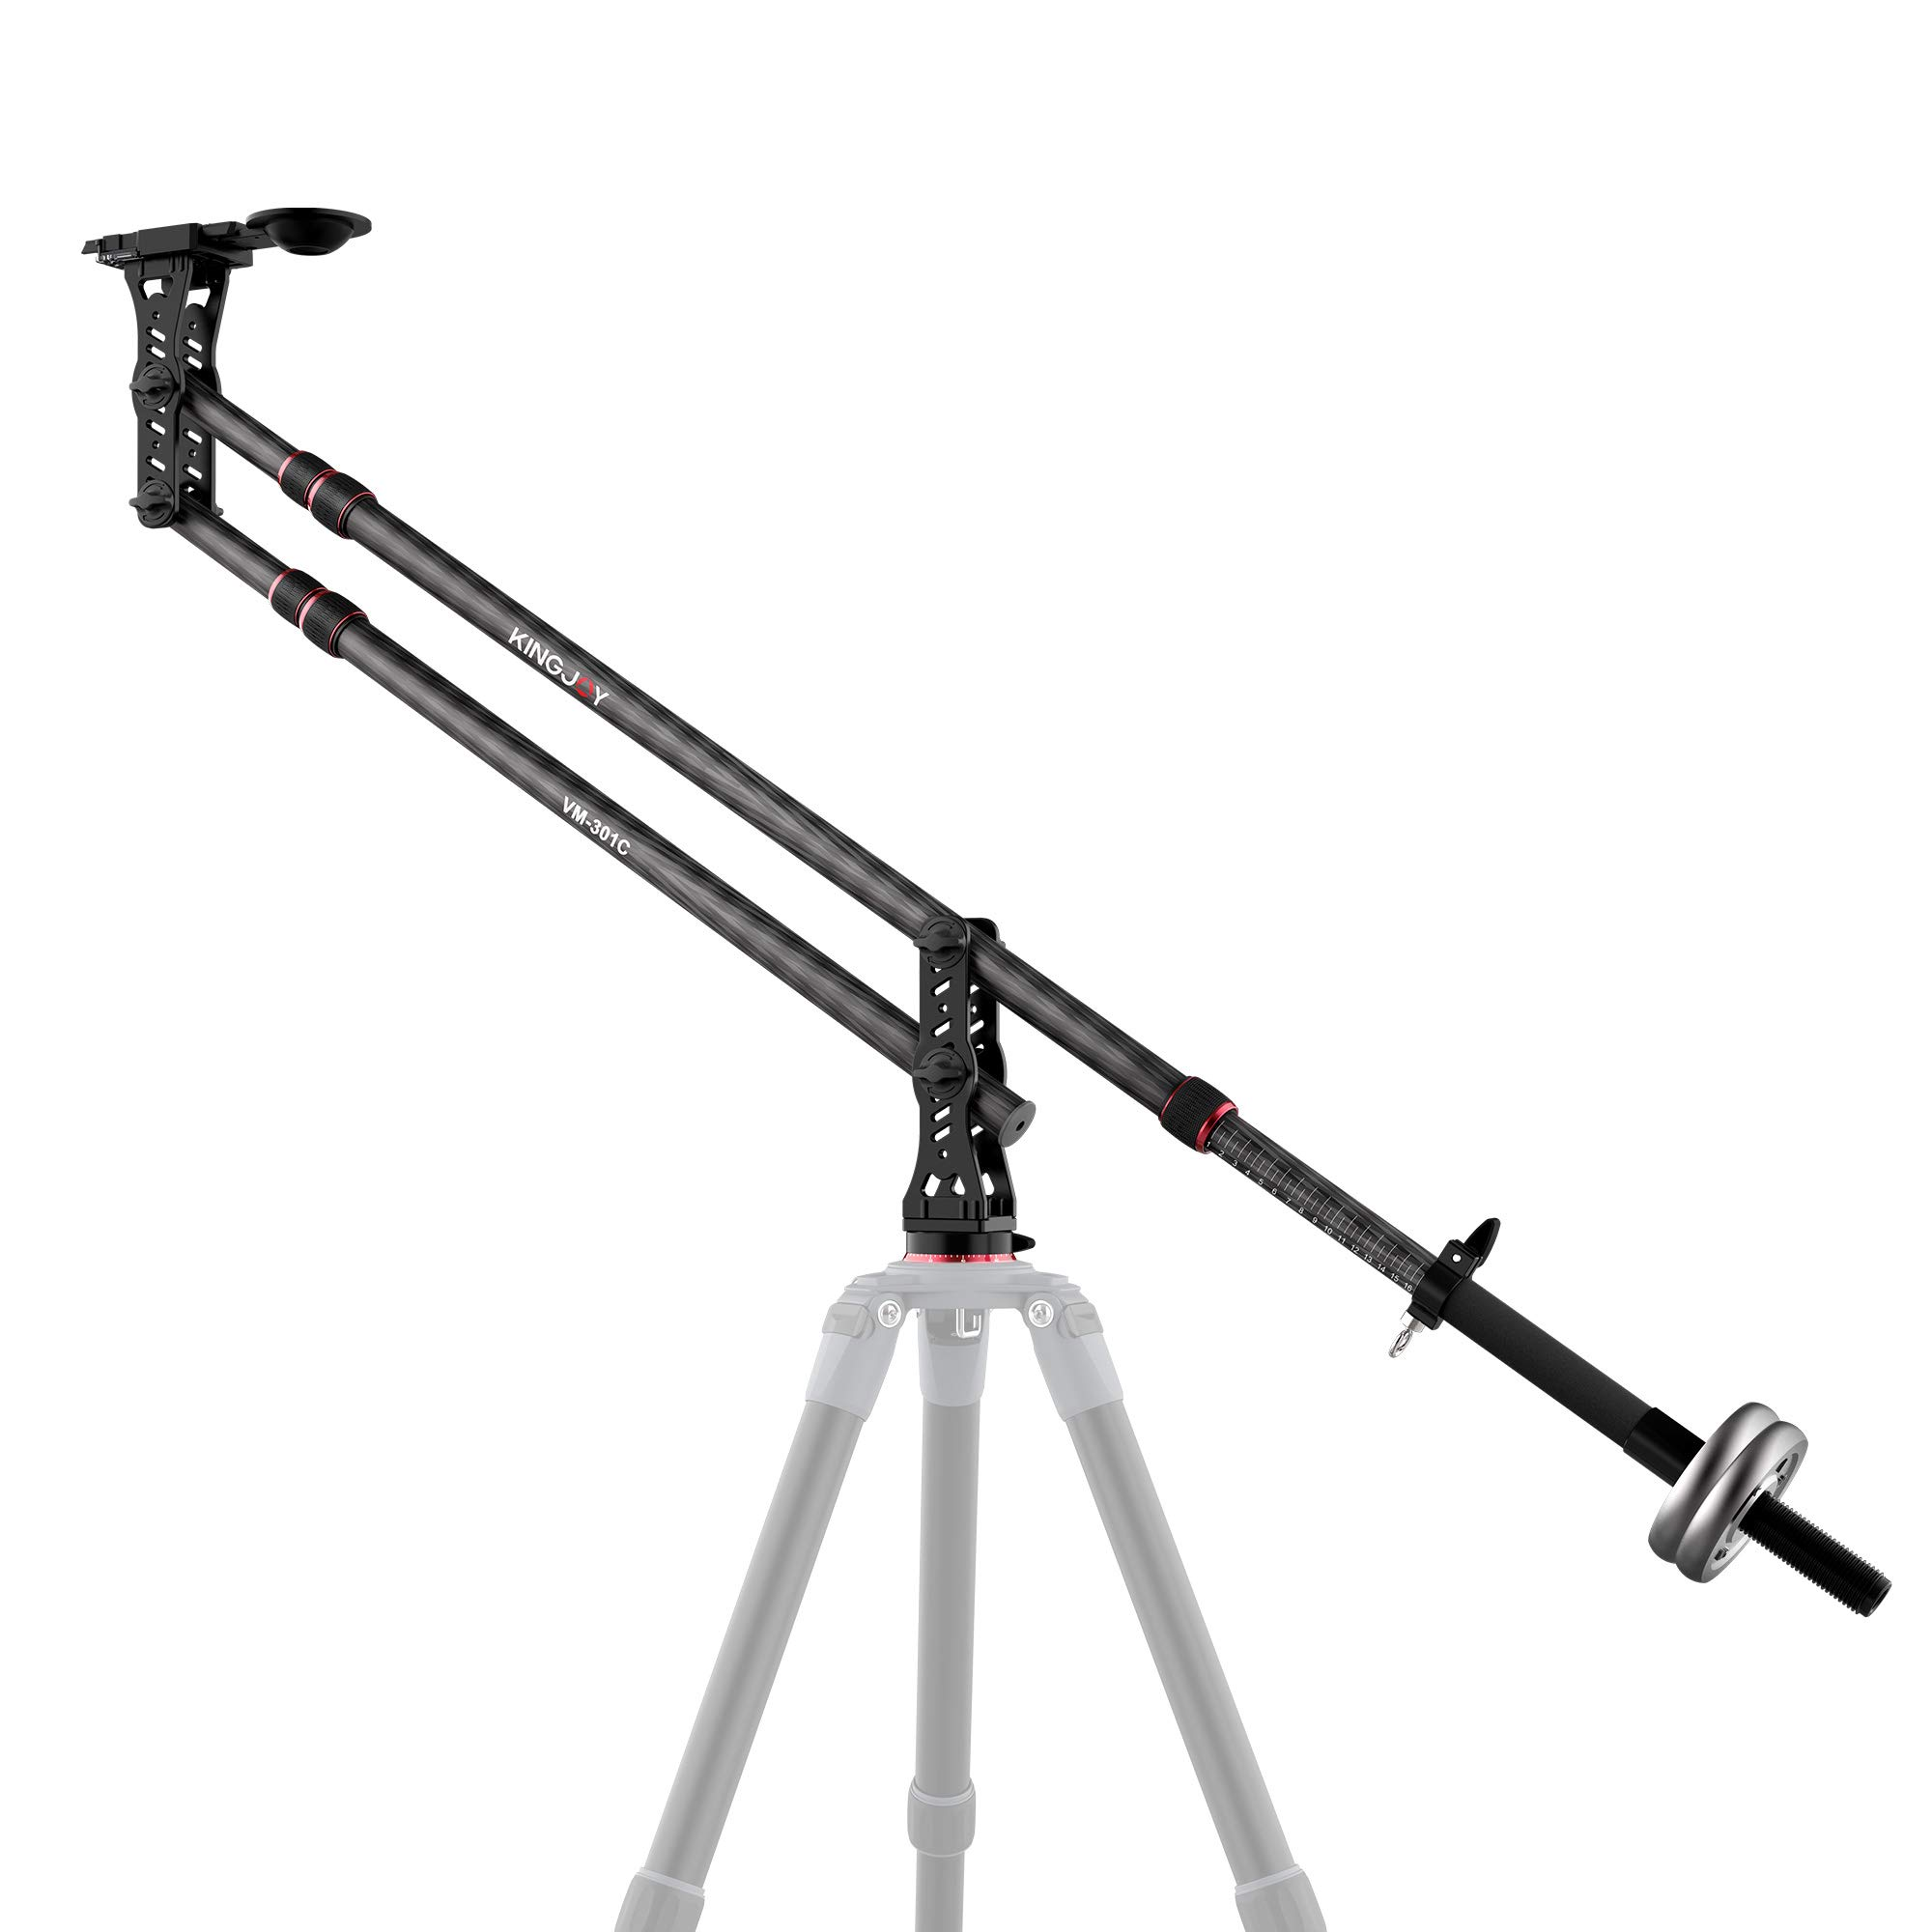 KINGJOY 82.7 inches Carbon Fiber Jib Arm Camera Crane with 1/4 and 3/8-inch Quick Shoe Plate, 360 Degree Pan Ball Head, Counter Weight for DSLR Video Cameras, Load up to 17.6 lbs, VM-301C by KINGJOY